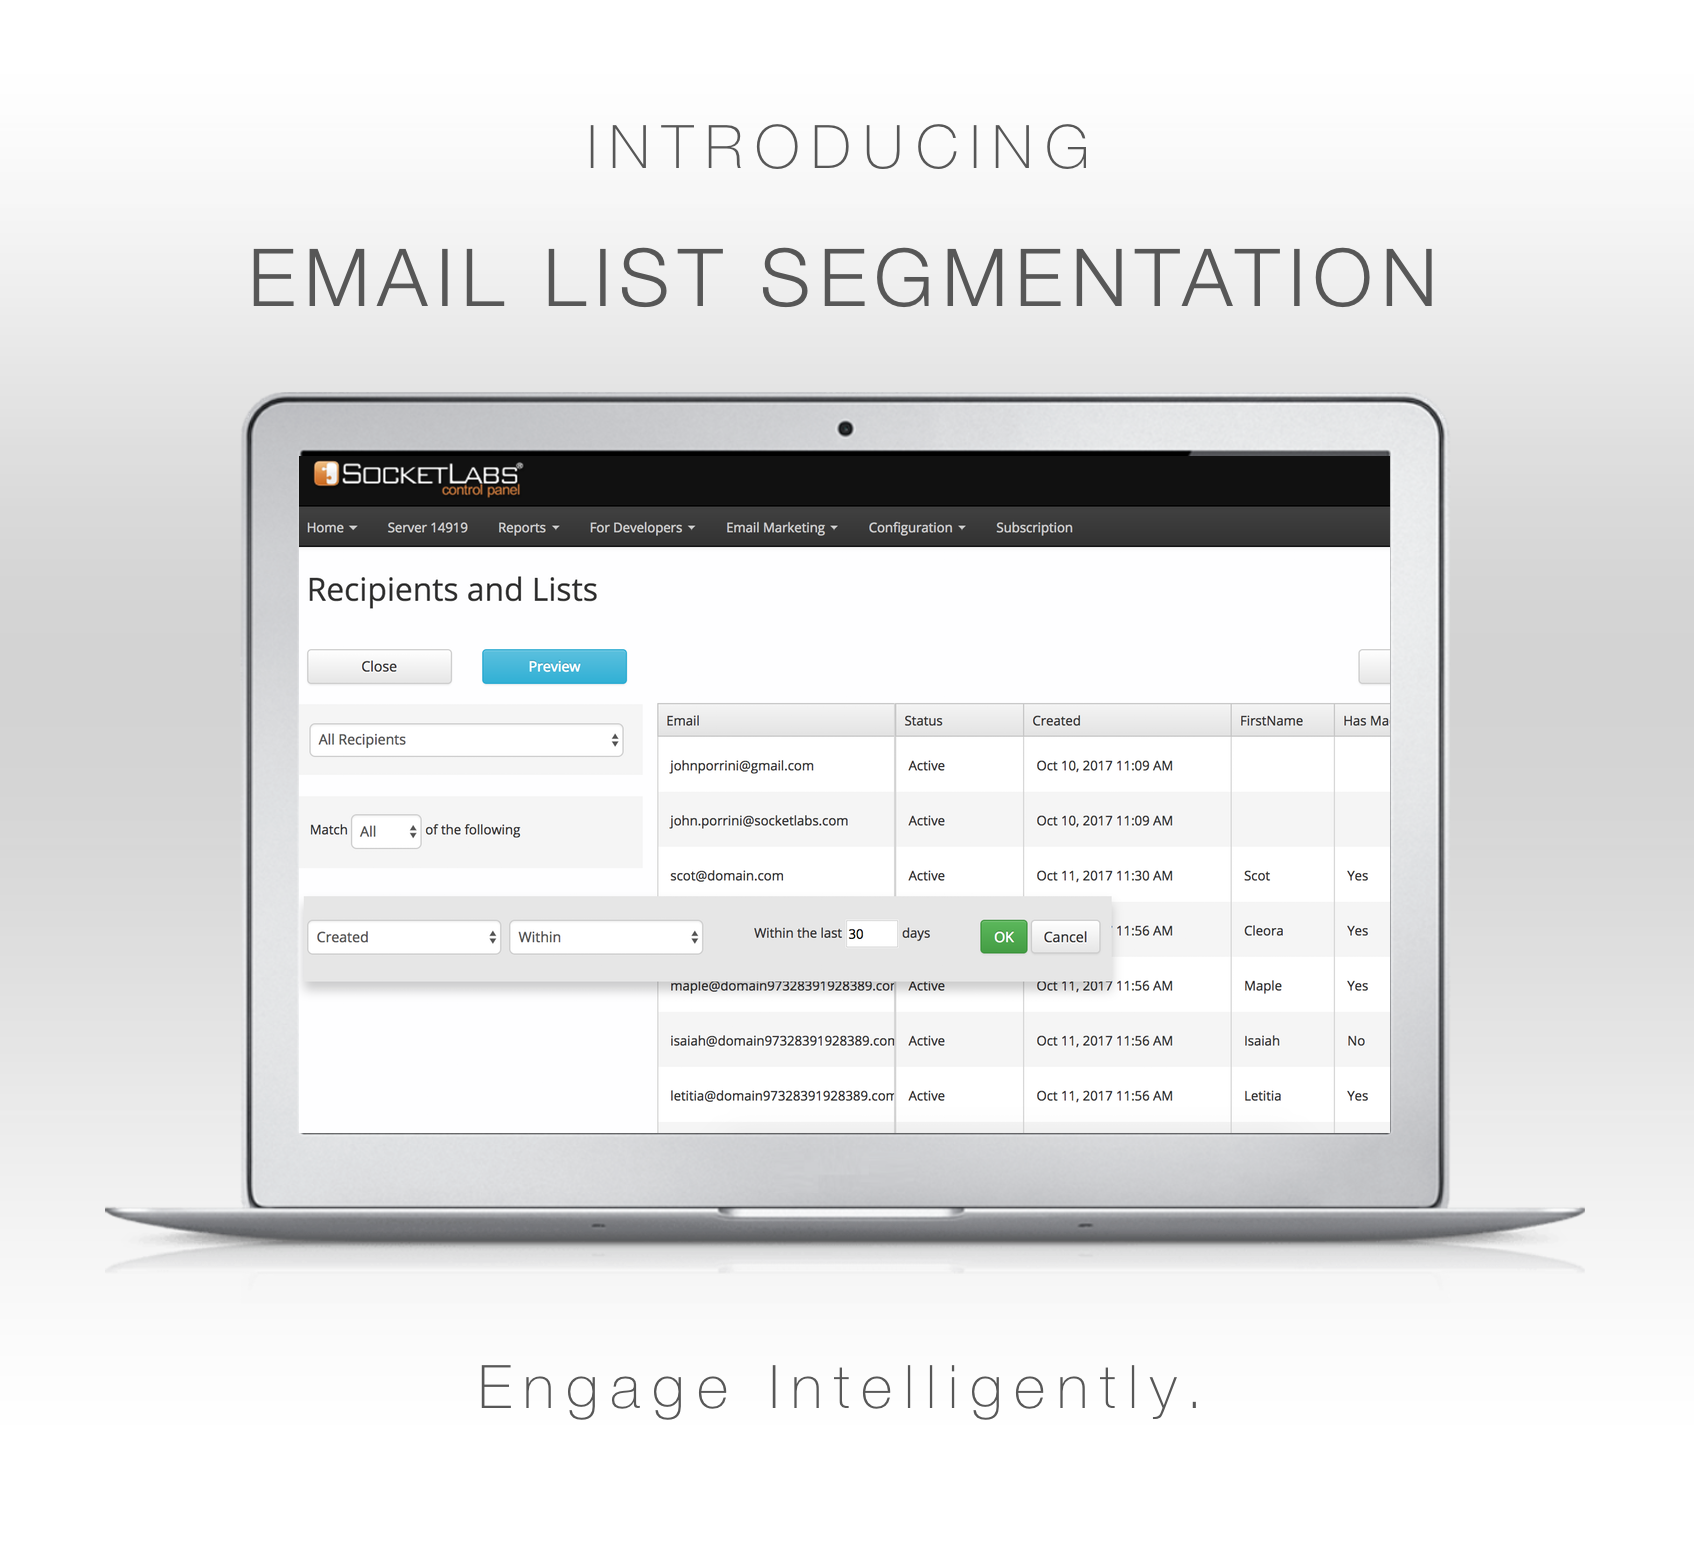 email list segmentation is here